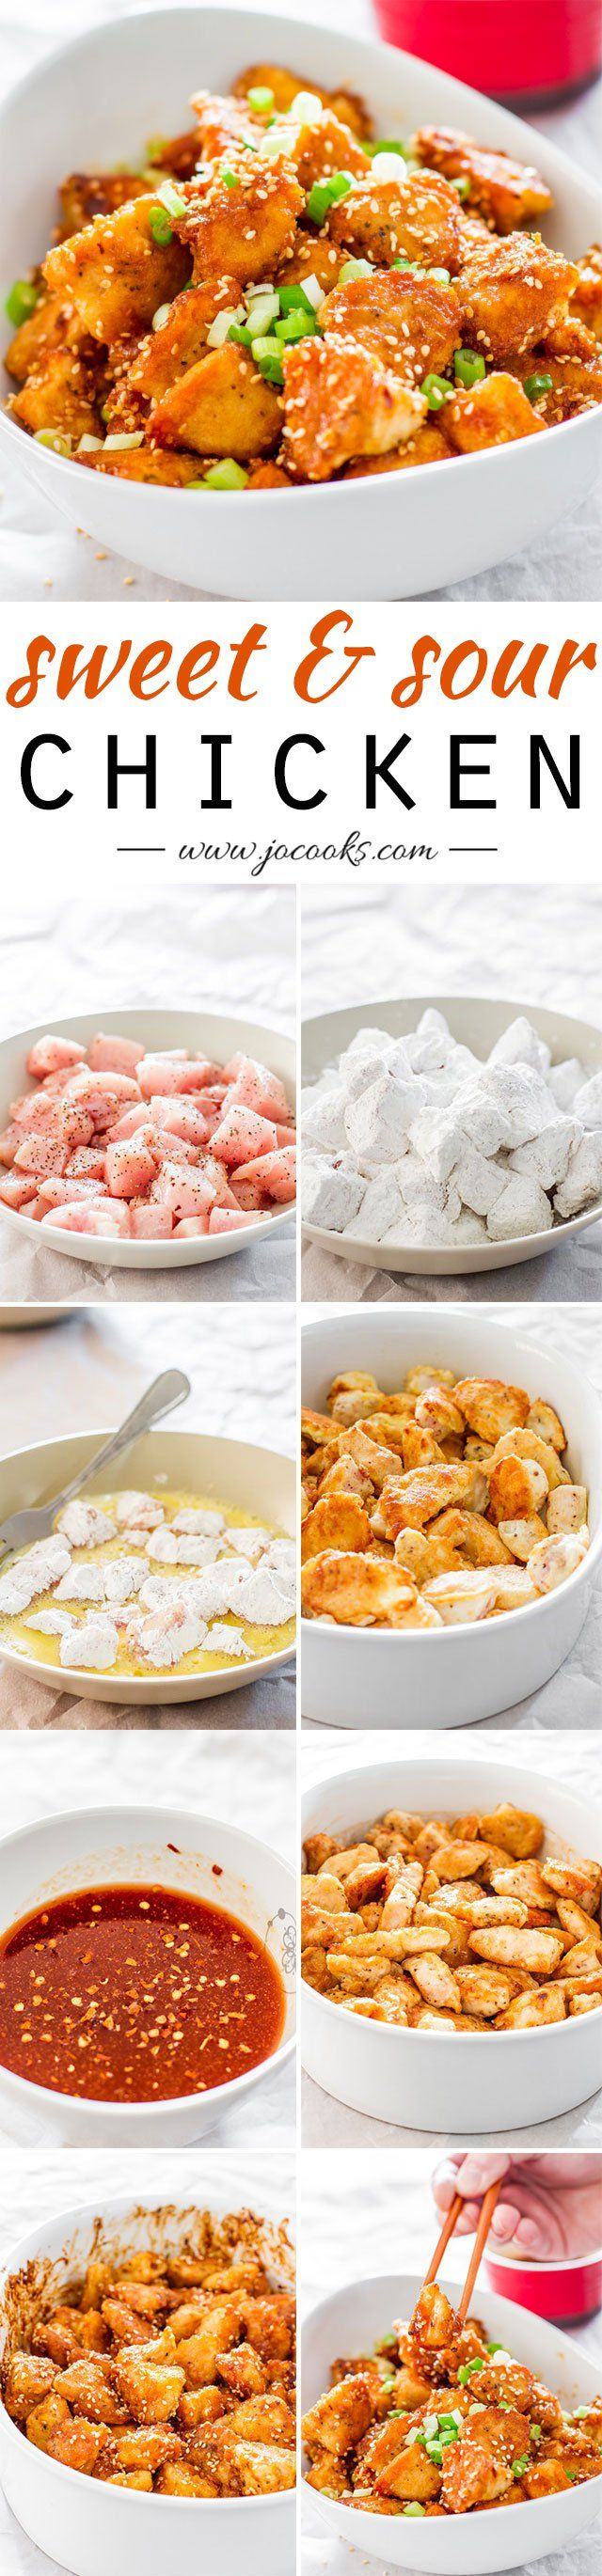 58 best Cooking with Muesli images on Pinterest   Healthy eating ...